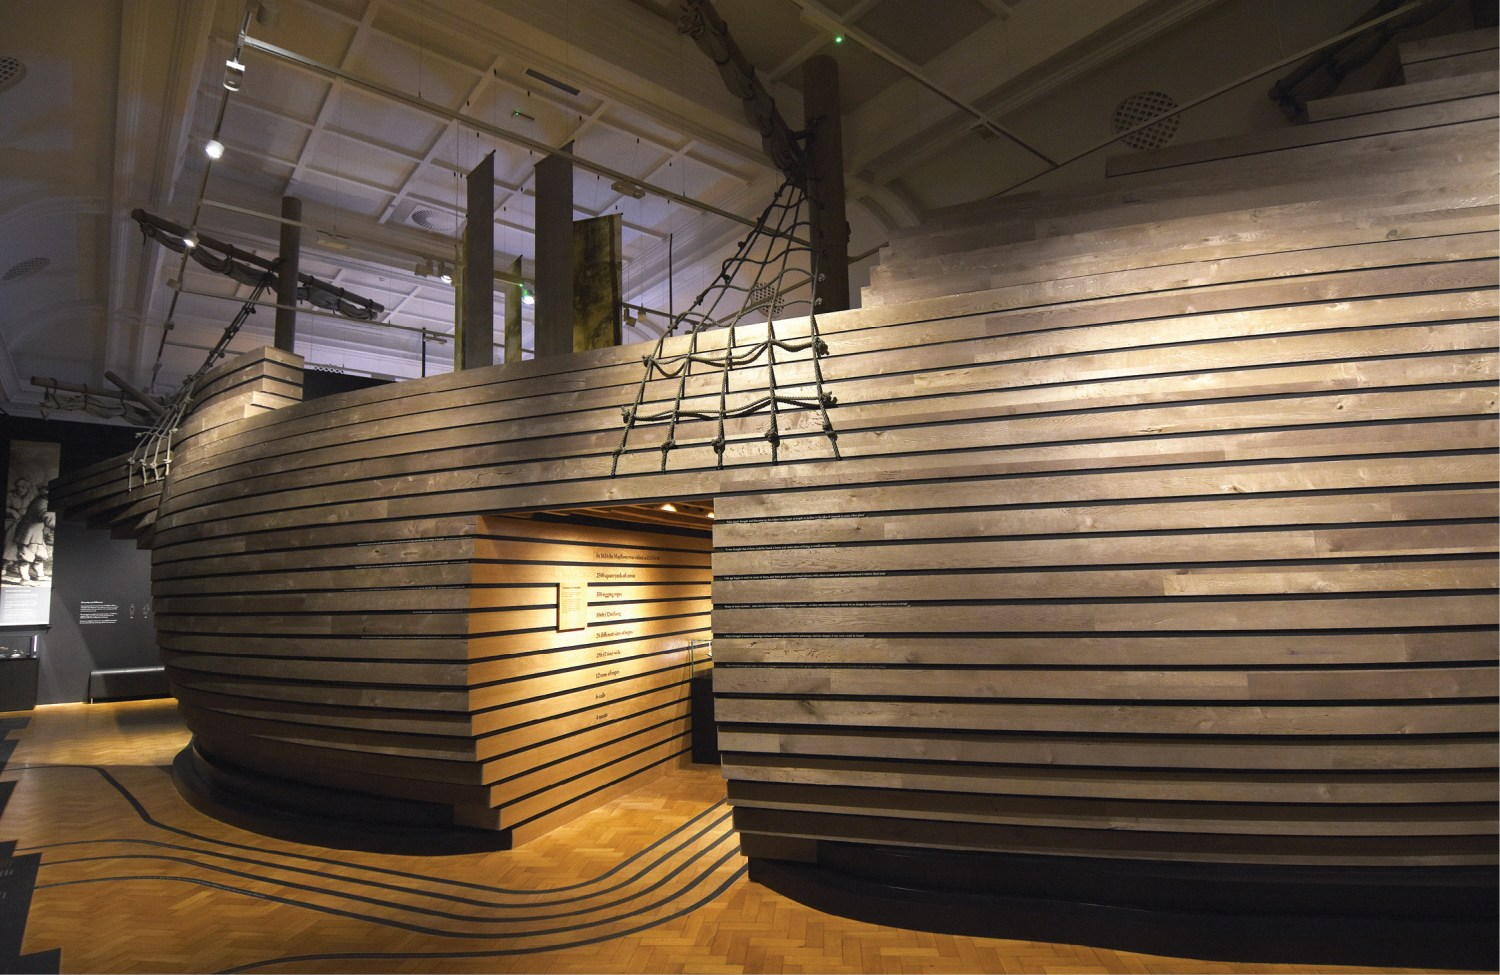 ABOVE Visitors can walk through the large ship structure that runs down the centre of the exhibition space to learn more about the journey and the